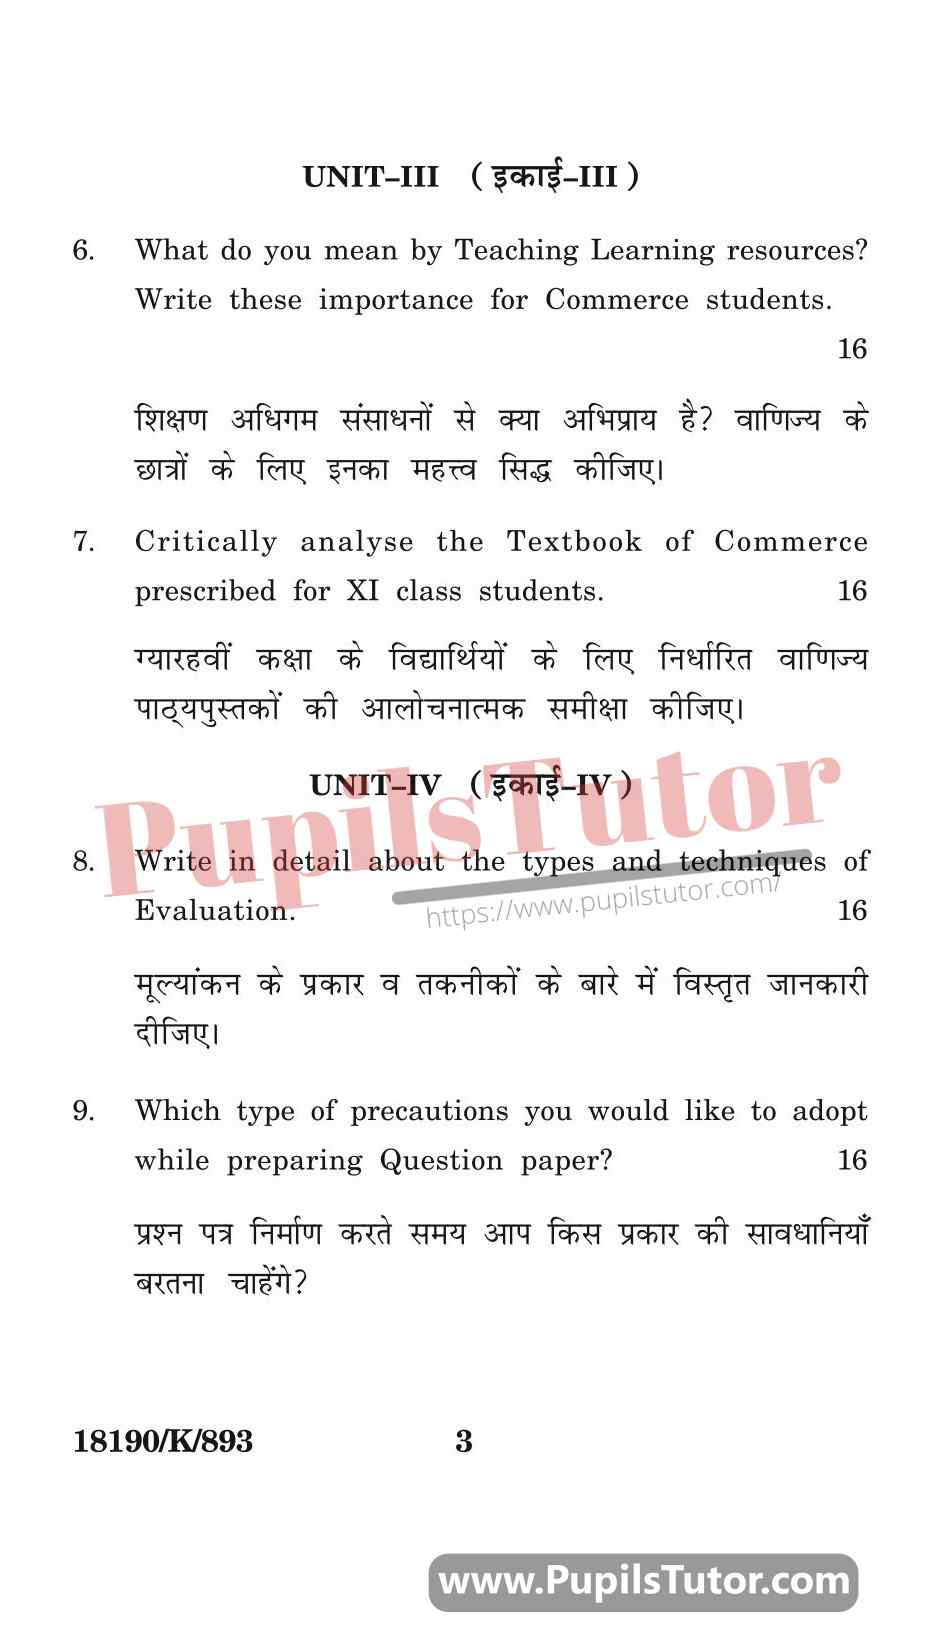 KUK (Kurukshetra University, Haryana) Pedagogy Of Commerce Question Paper 2020 For B.Ed 1st And 2nd Year And All The 4 Semesters In English And Hindi Medium Free Download PDF - Page 3 - pupilstutor